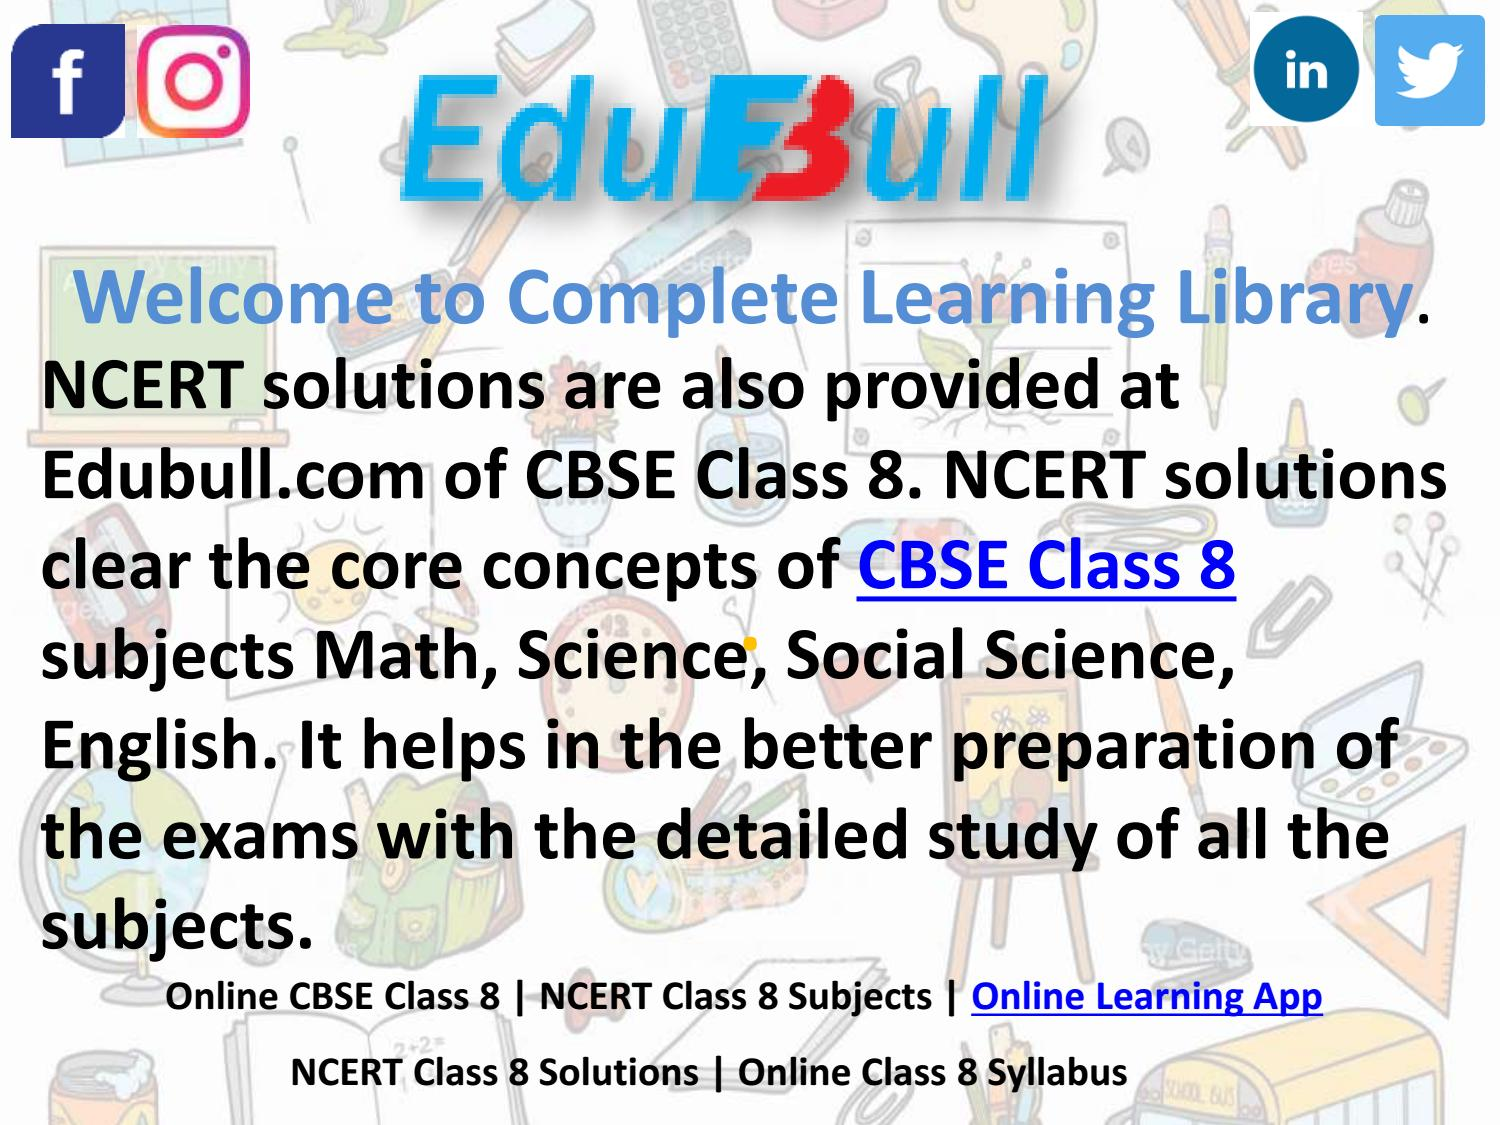 NCERT solution For Class 8 | Class 8 NCERT Solutions by